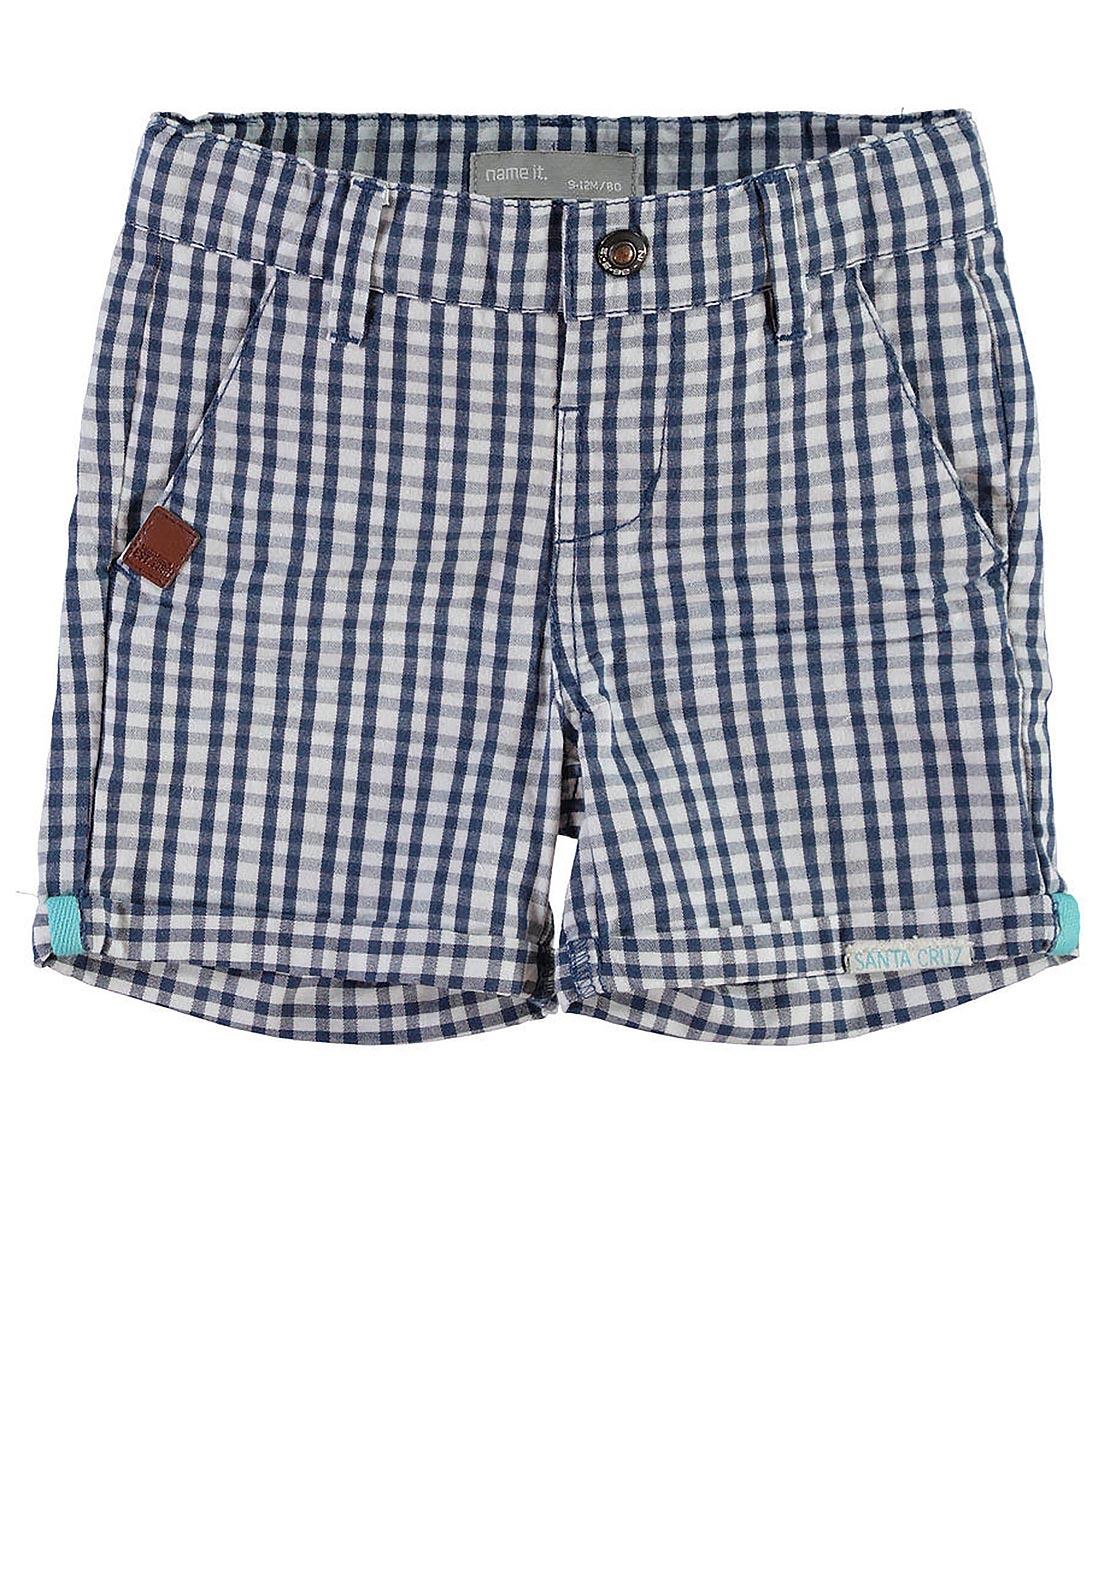 Name It Mini Boys Sam Chequered Chino Shorts, Navy